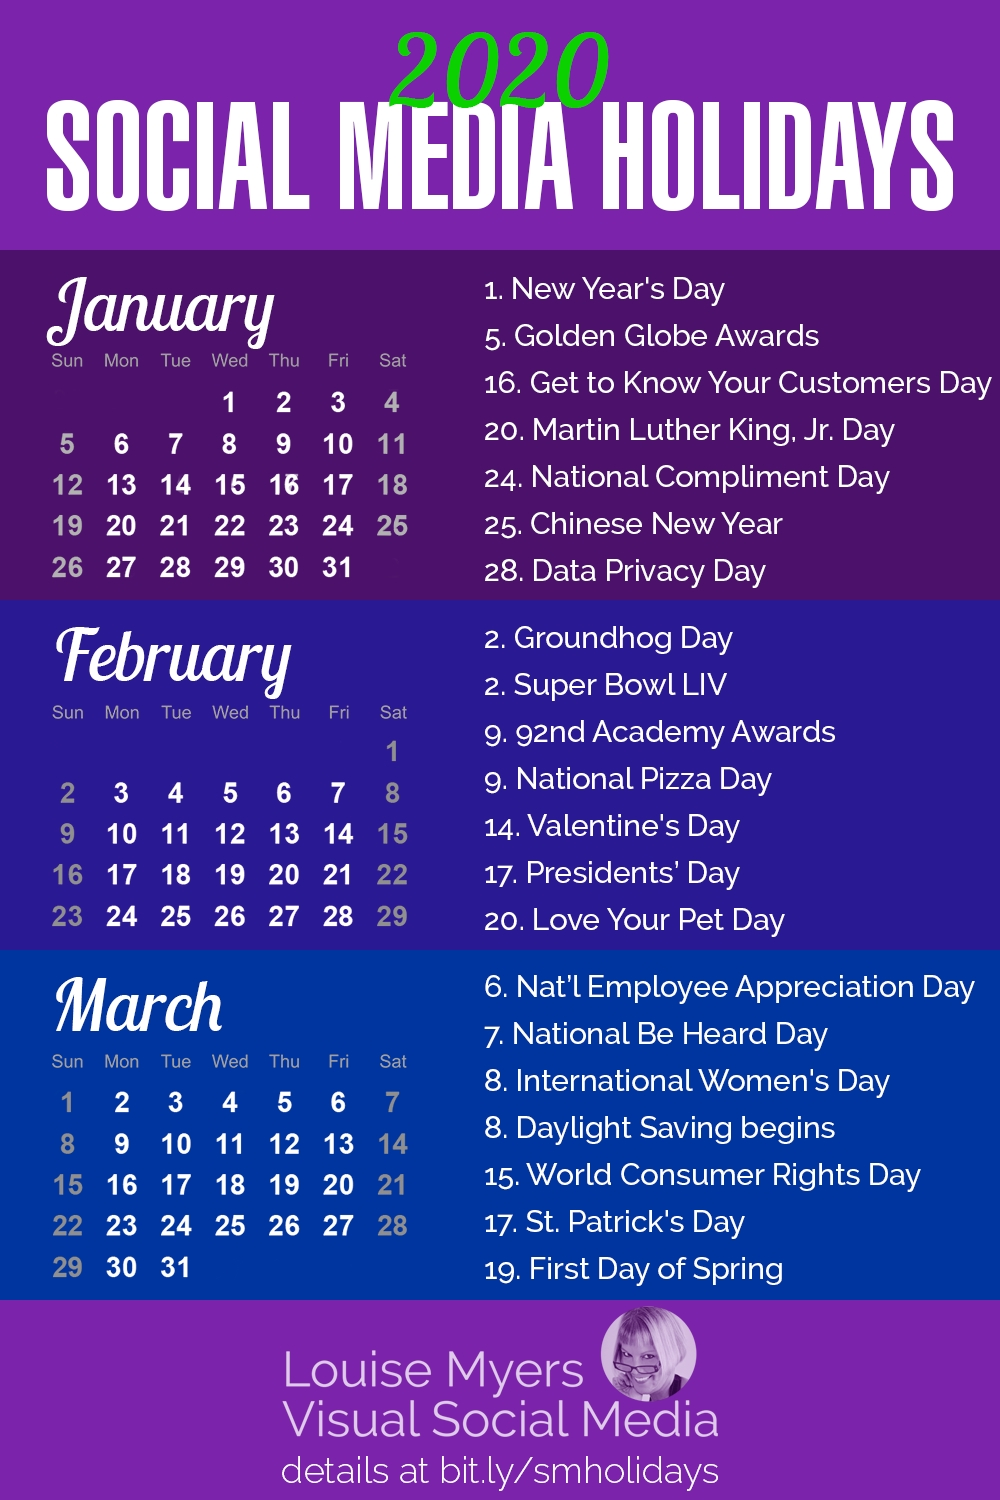 100+ Social Media Holidays You Need In 2020-21